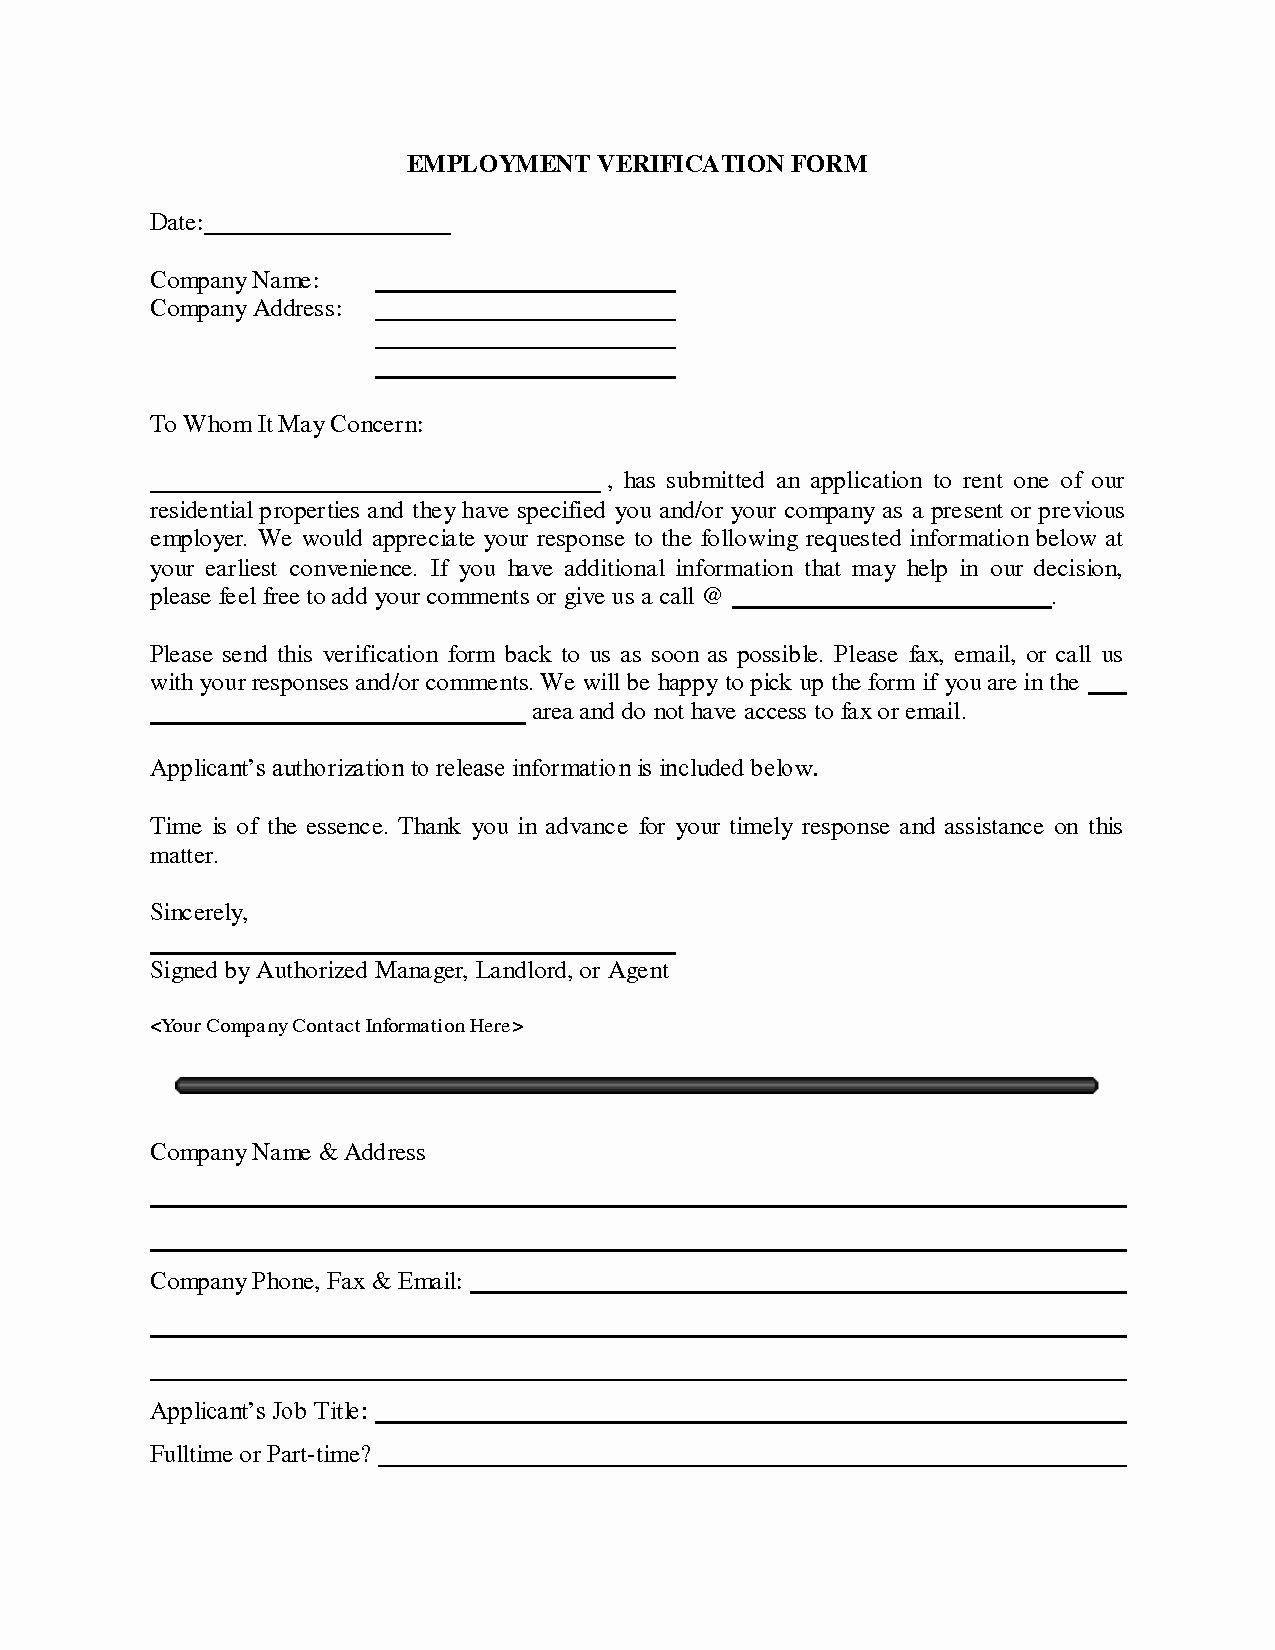 Employment Verification Form Template Fresh Generic Employment Verification Form Employment Form Sign In Sheet Template Sign Up Sheets